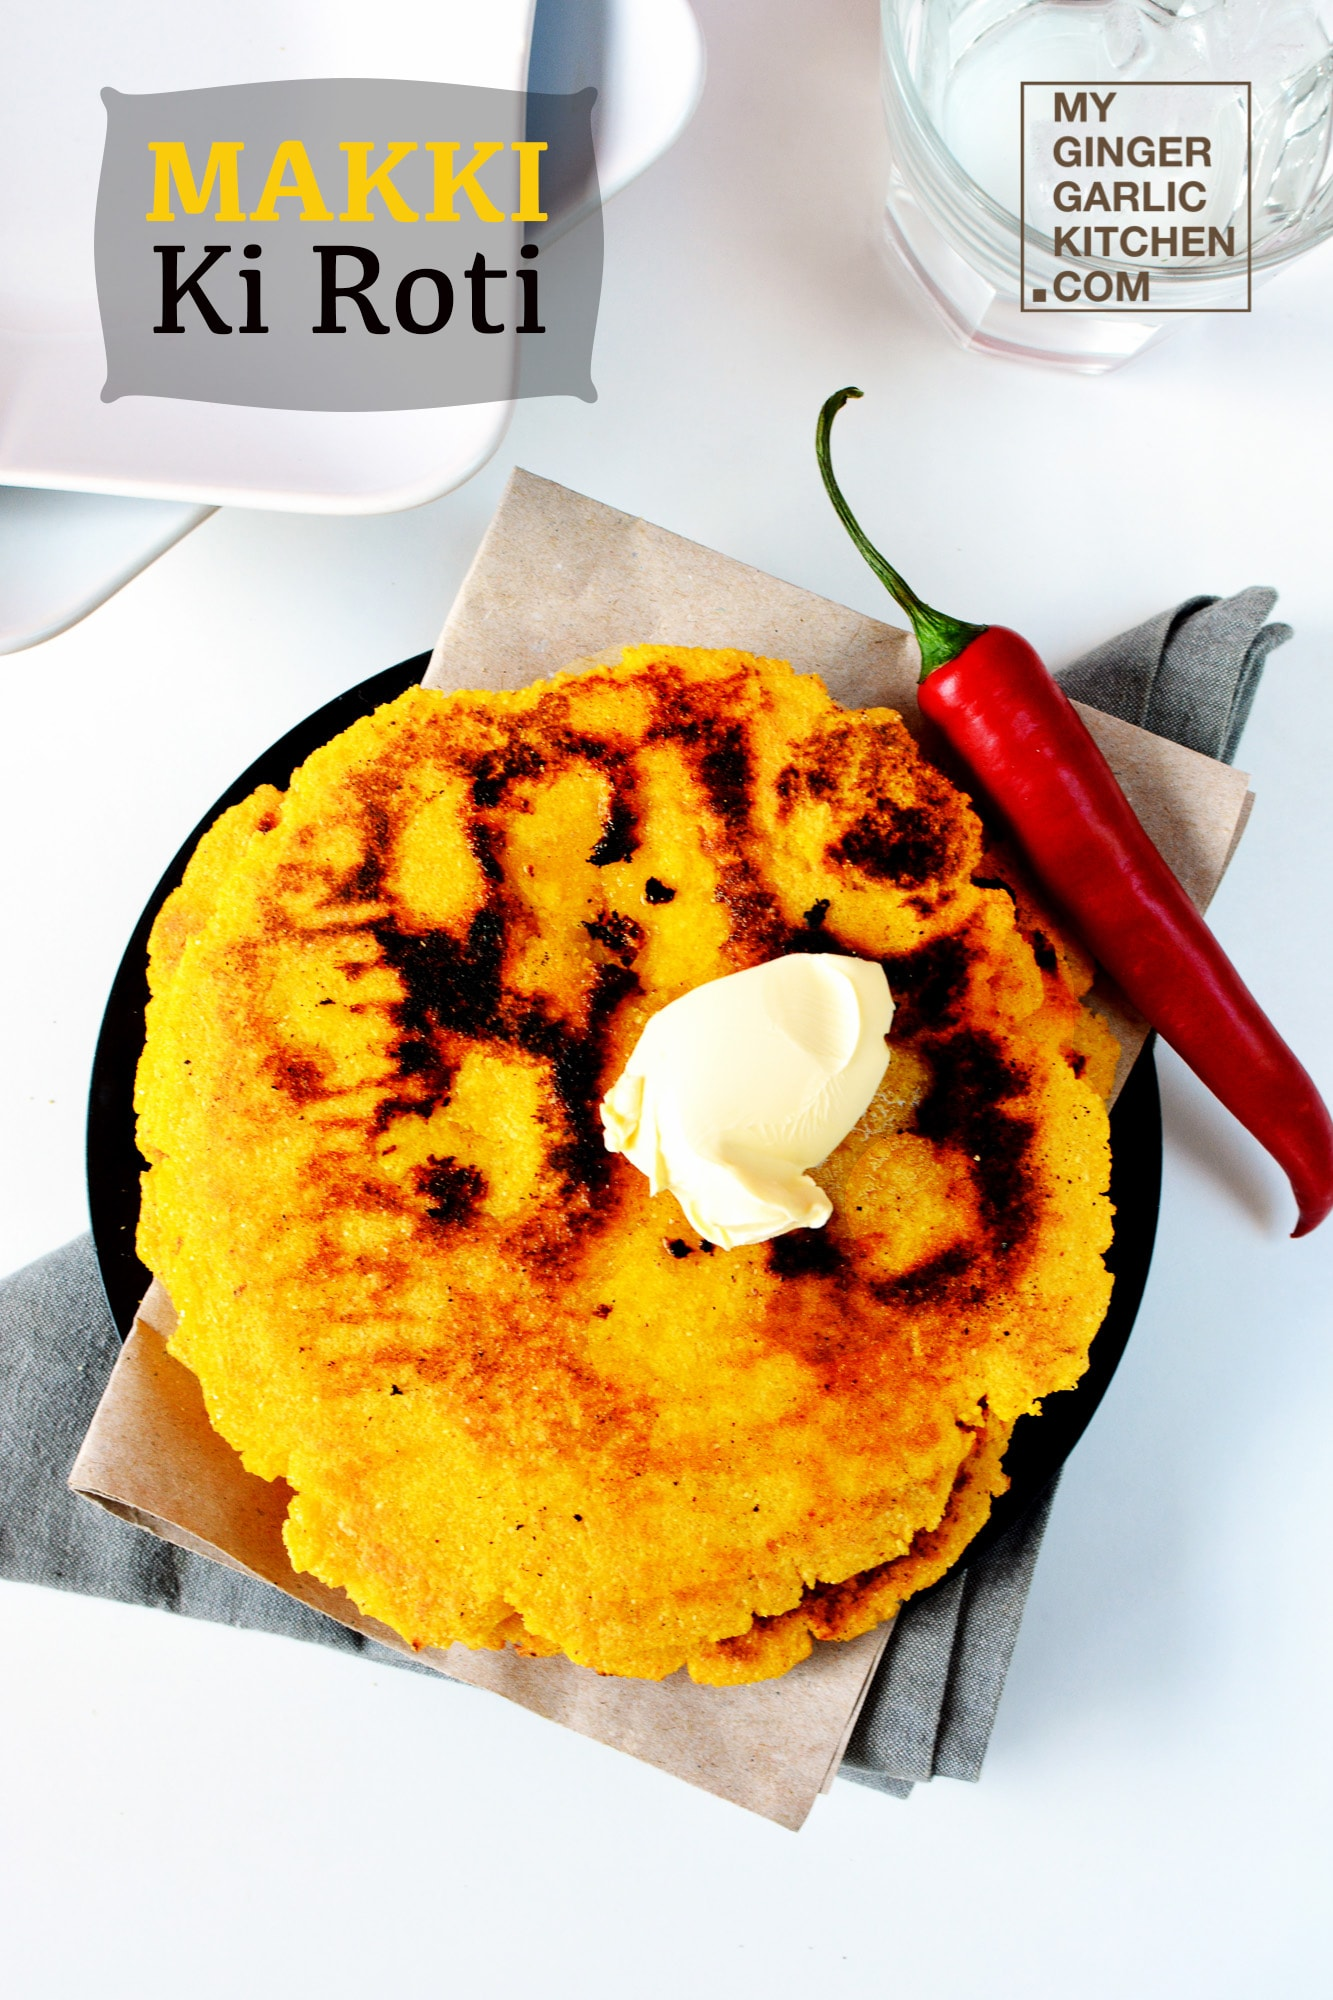 Image of Sunahari Makki Ki Roti - Golden Cornmeal Flatbread